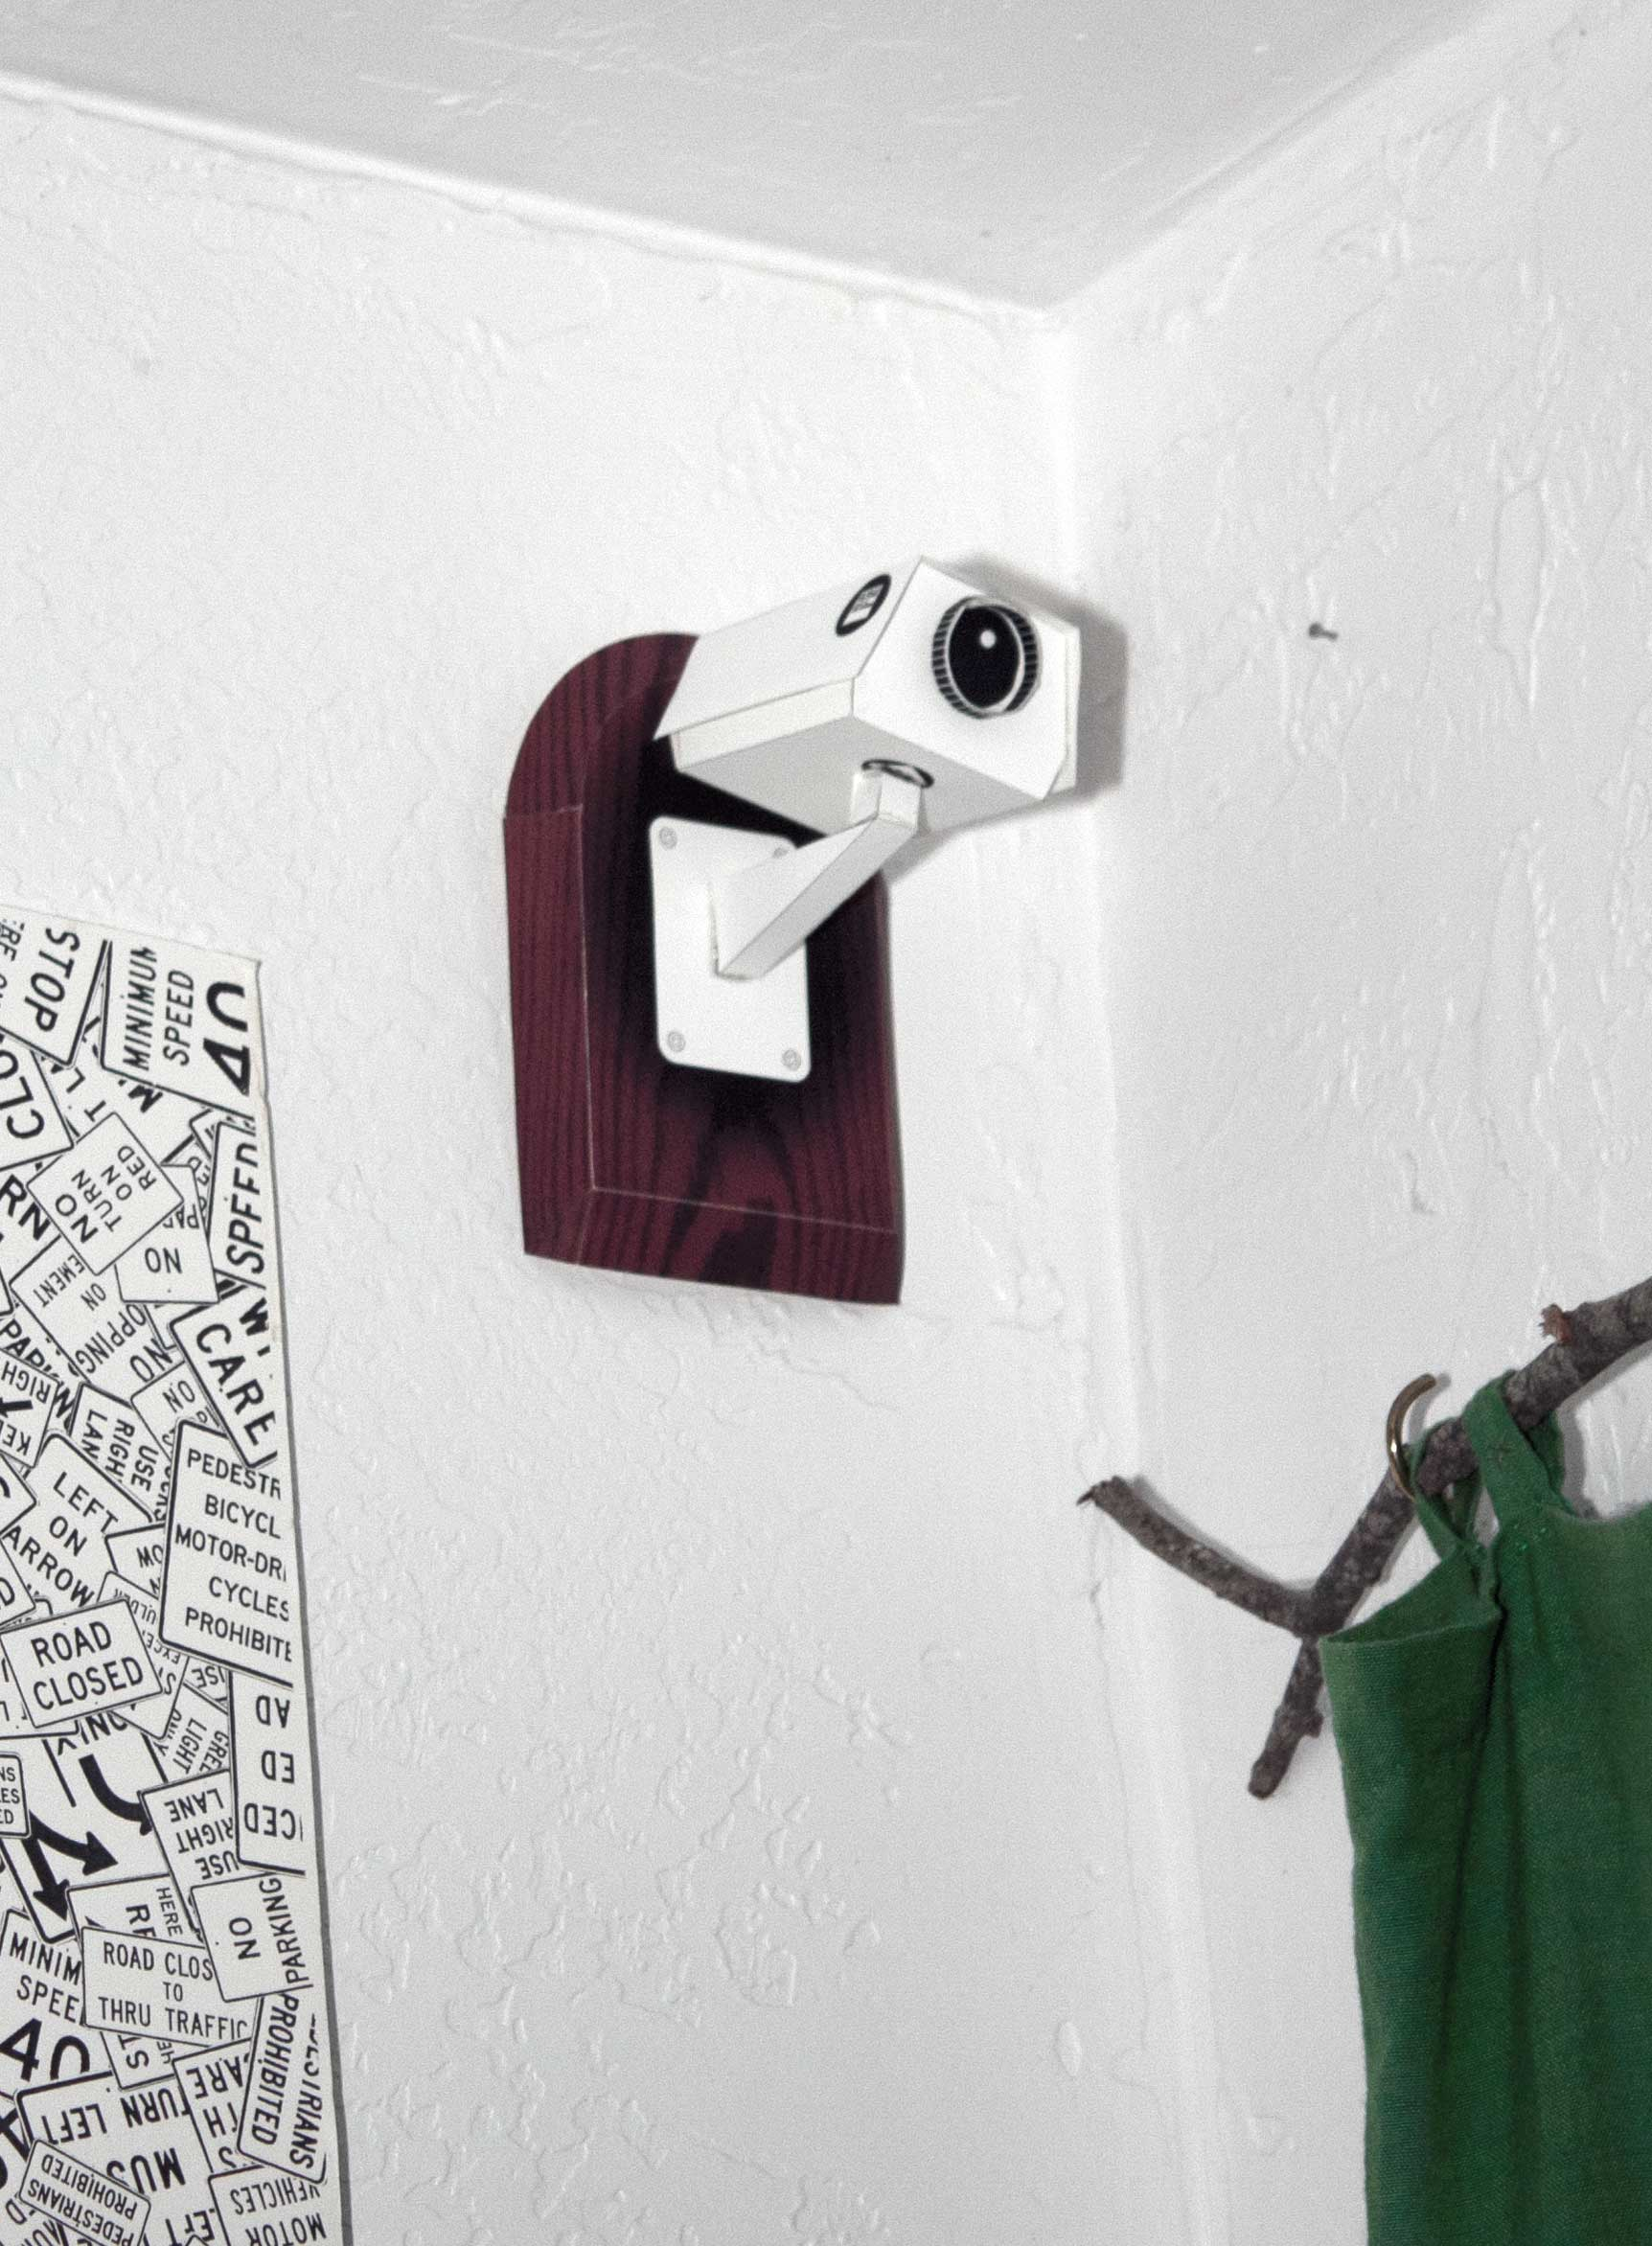 CCTV Security Camera Free Paper Model Download